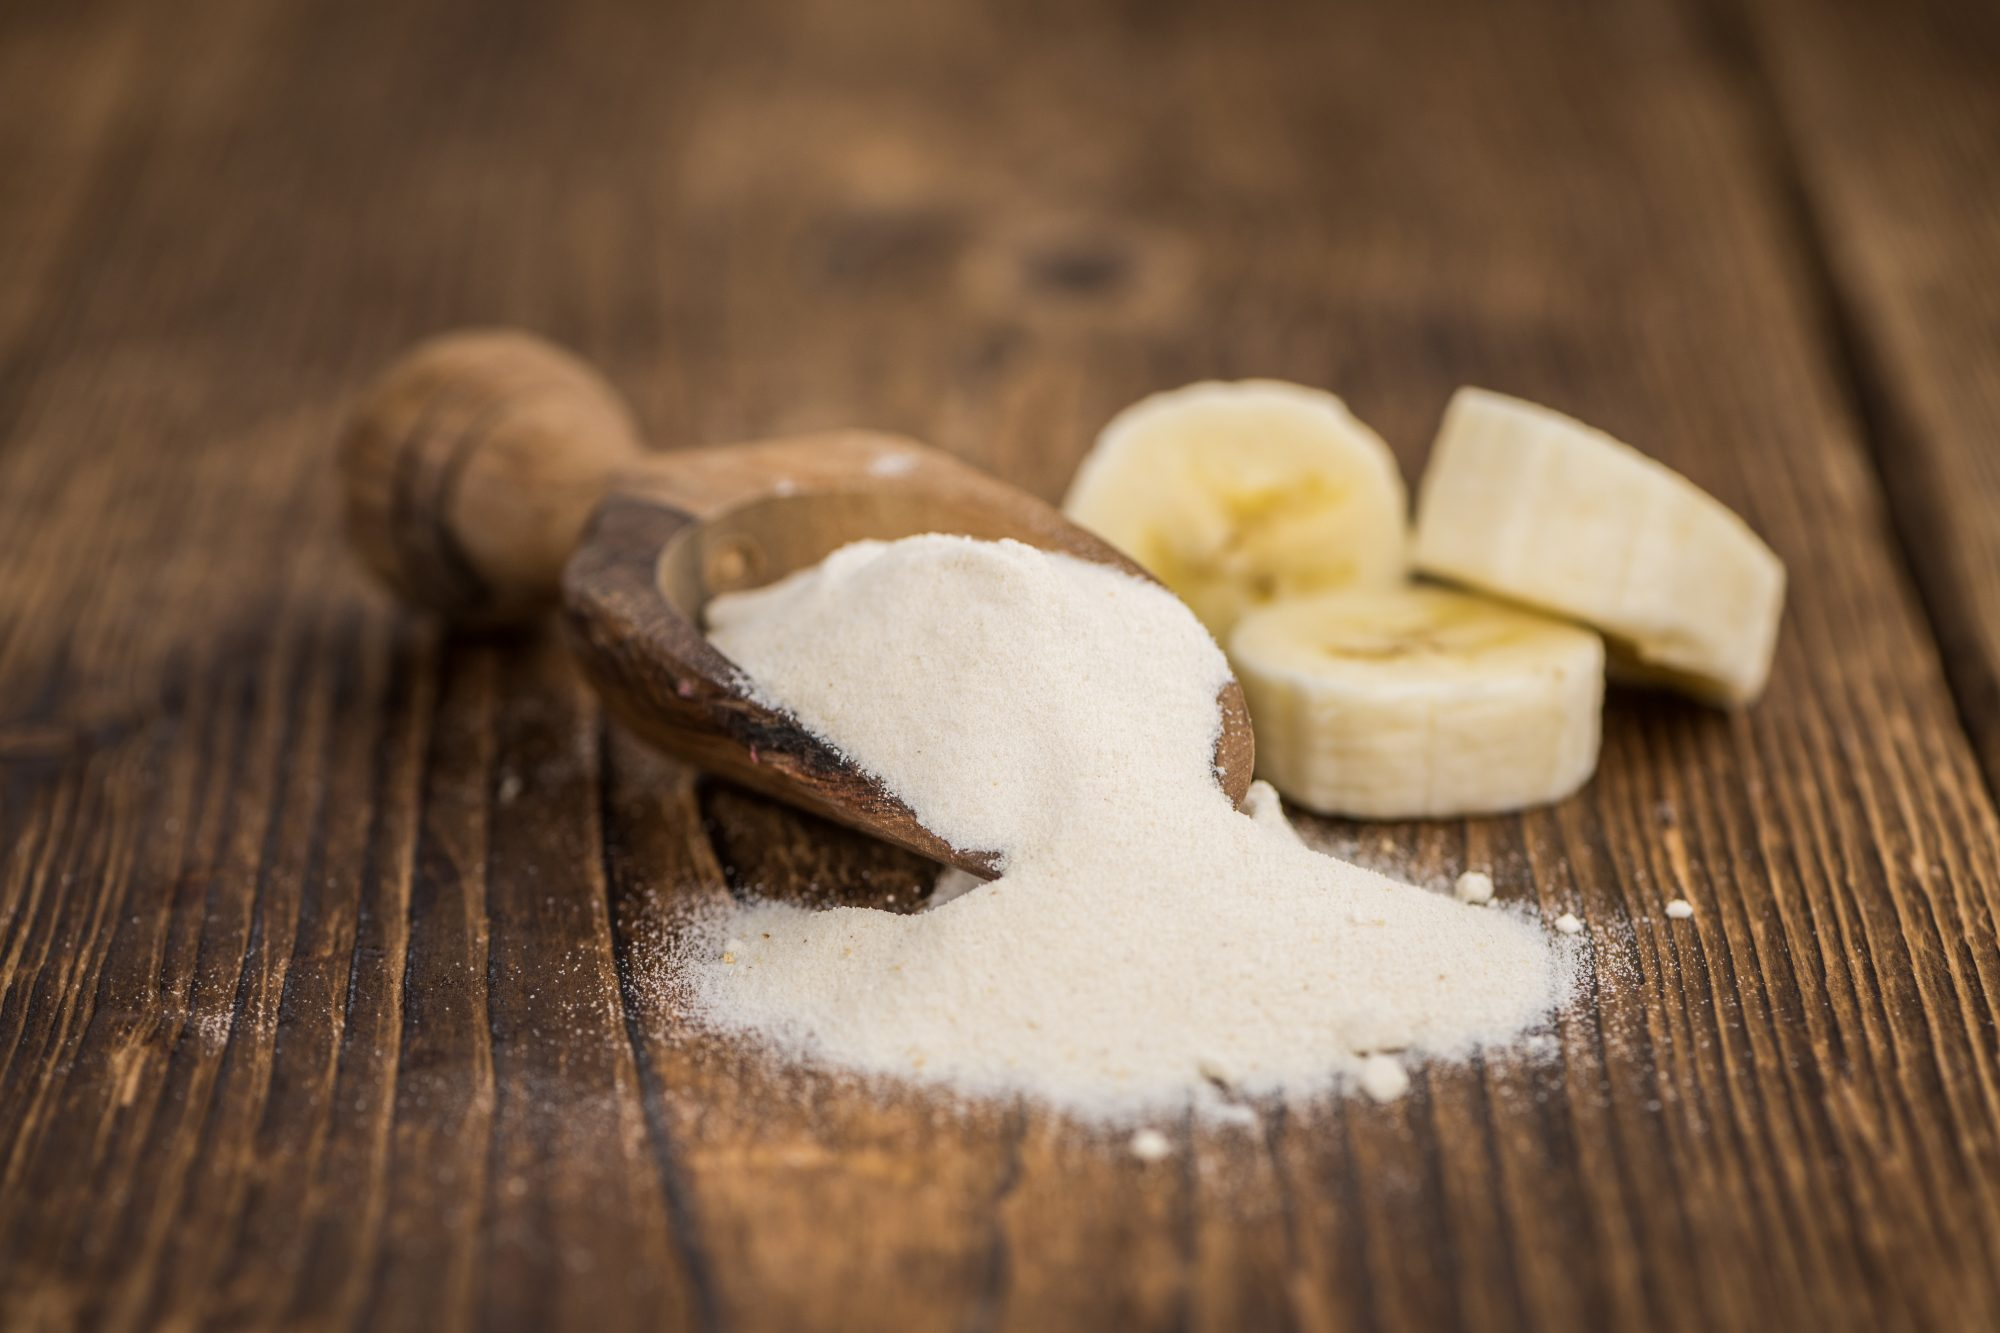 getty-banana-flour-image